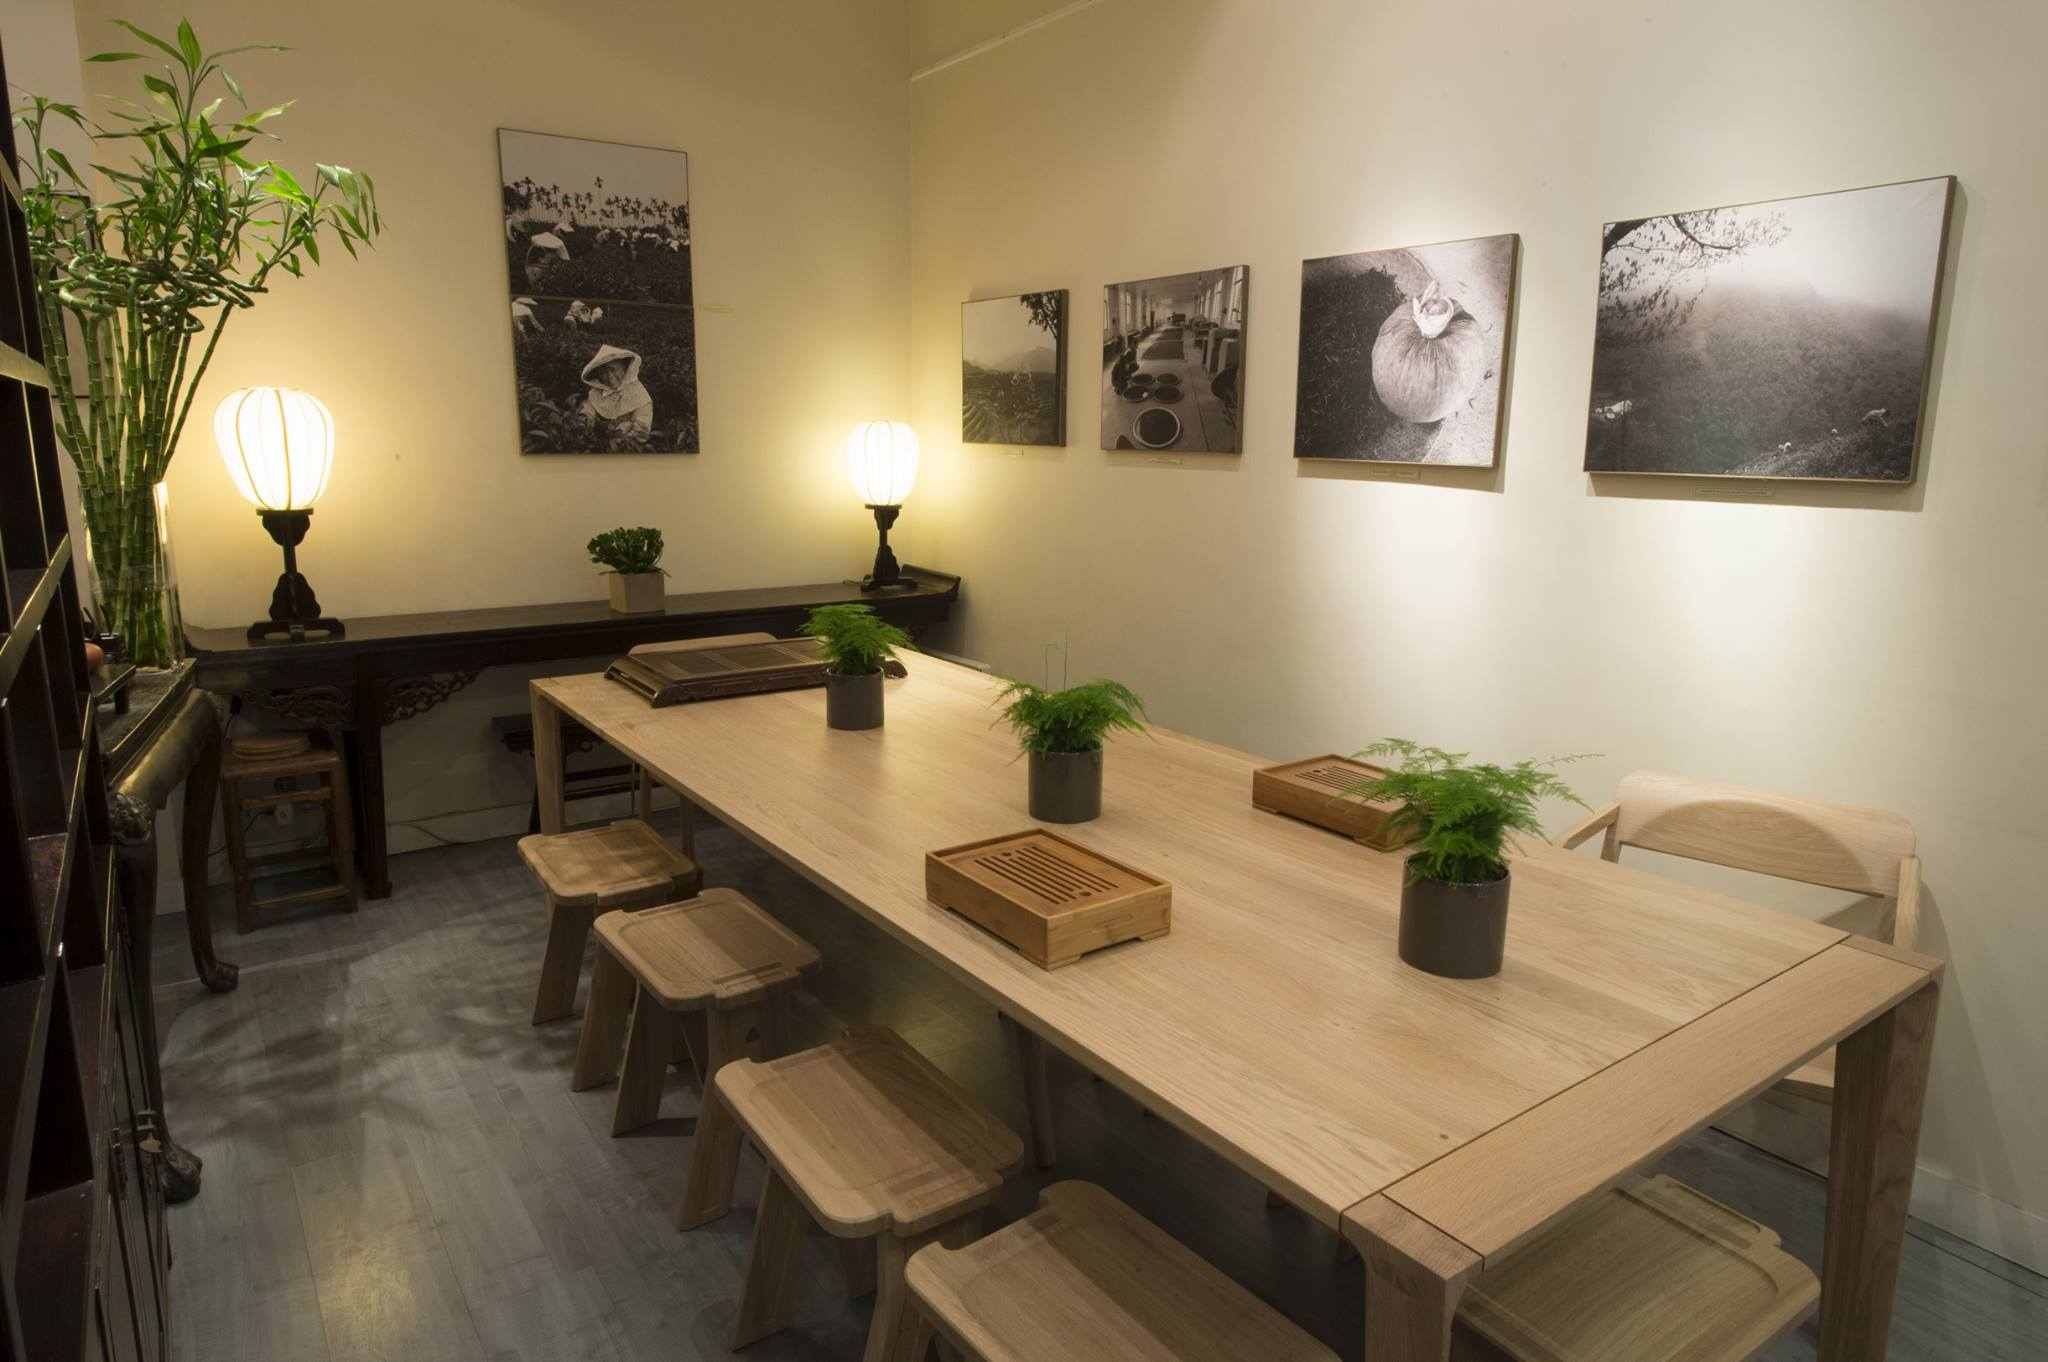 Located in Paris,  Terre de Chine  is a tea house inspired in the traditional tea houses from China with  contemporary wooden furniture  from  WEWOOD .